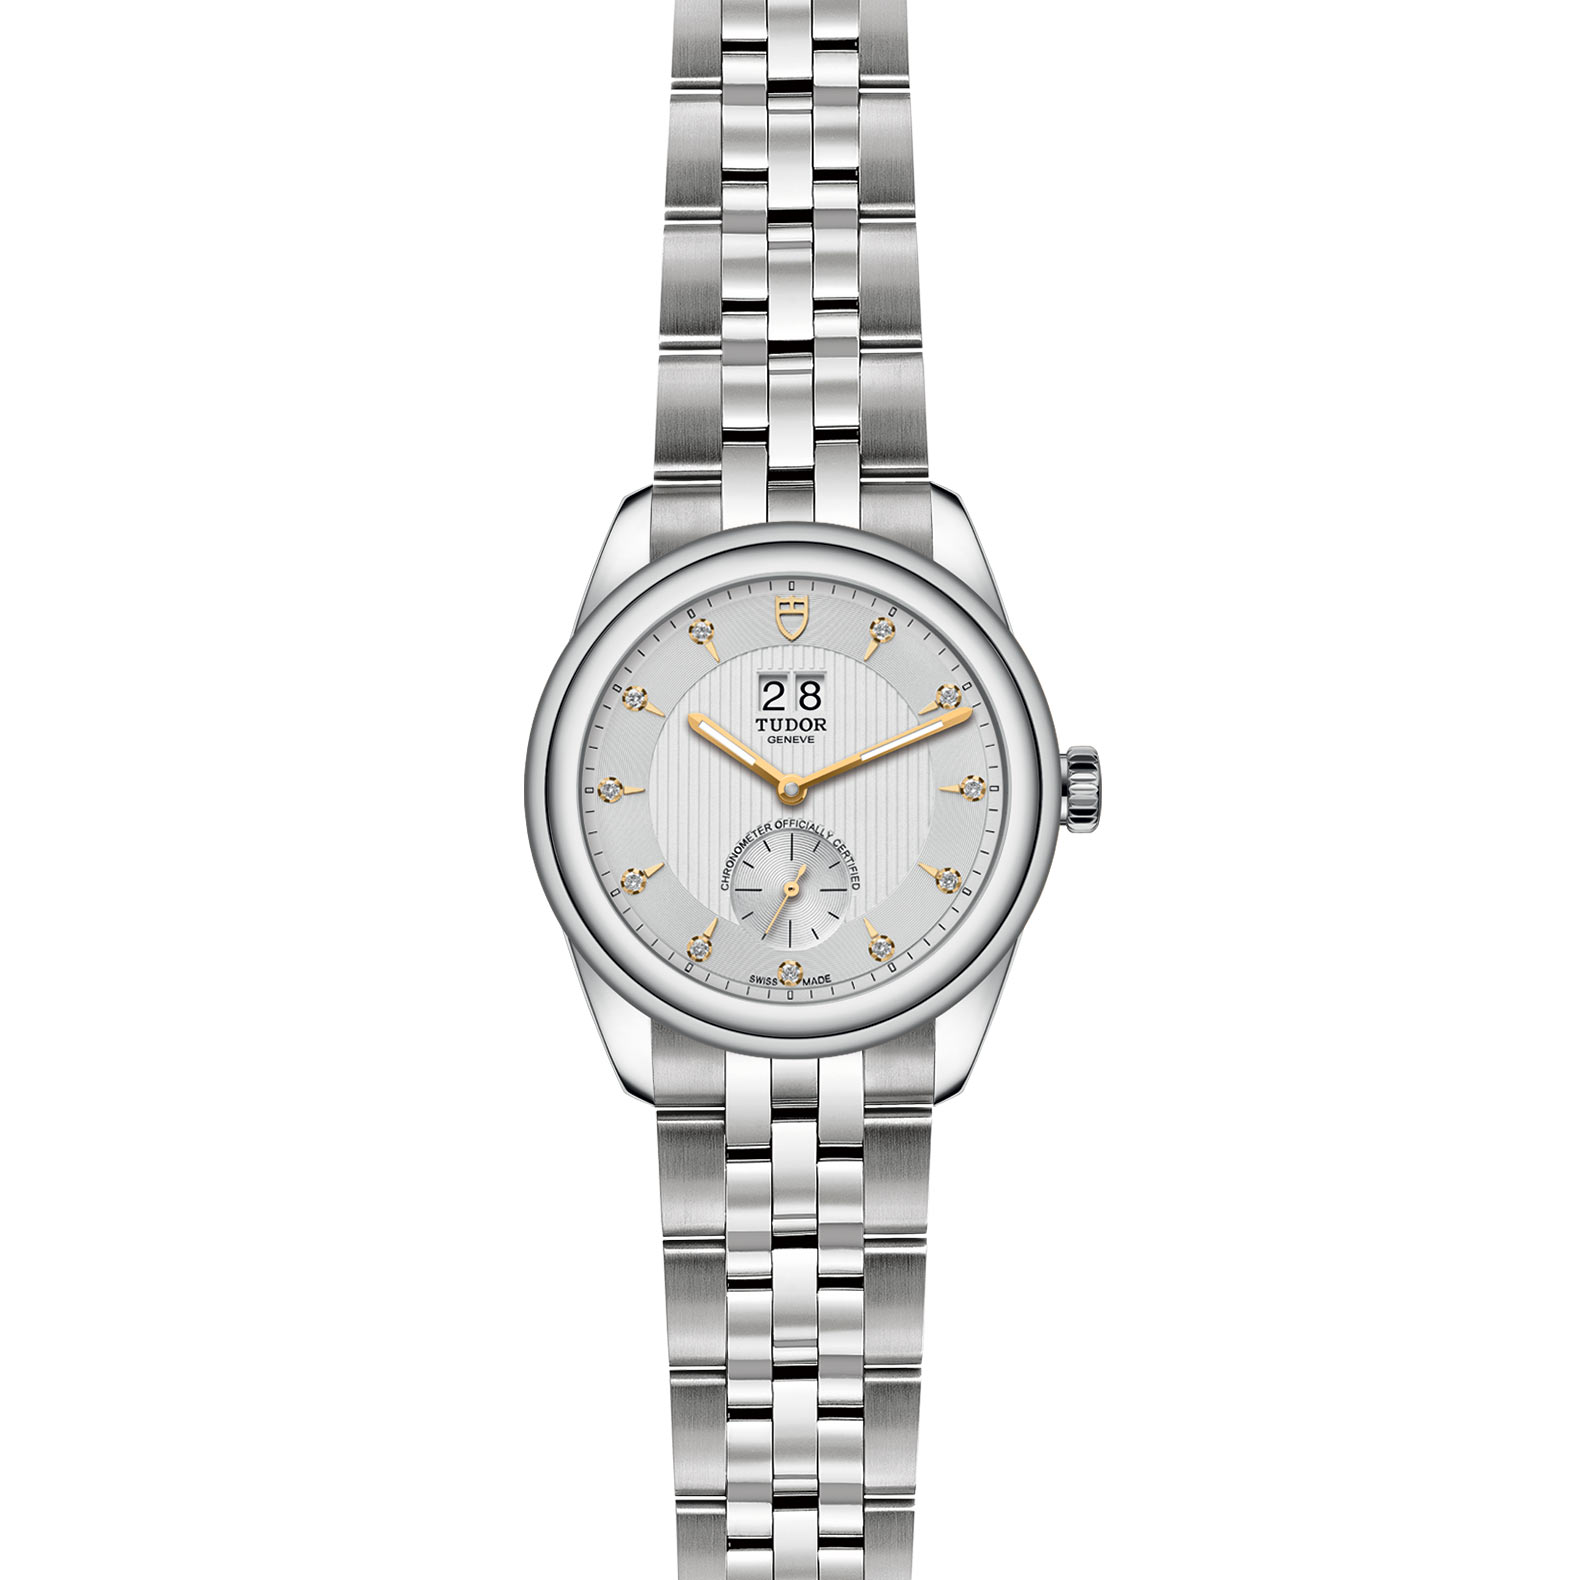 TUDOR Glamour Double Date M57100 0005 Frontfacing